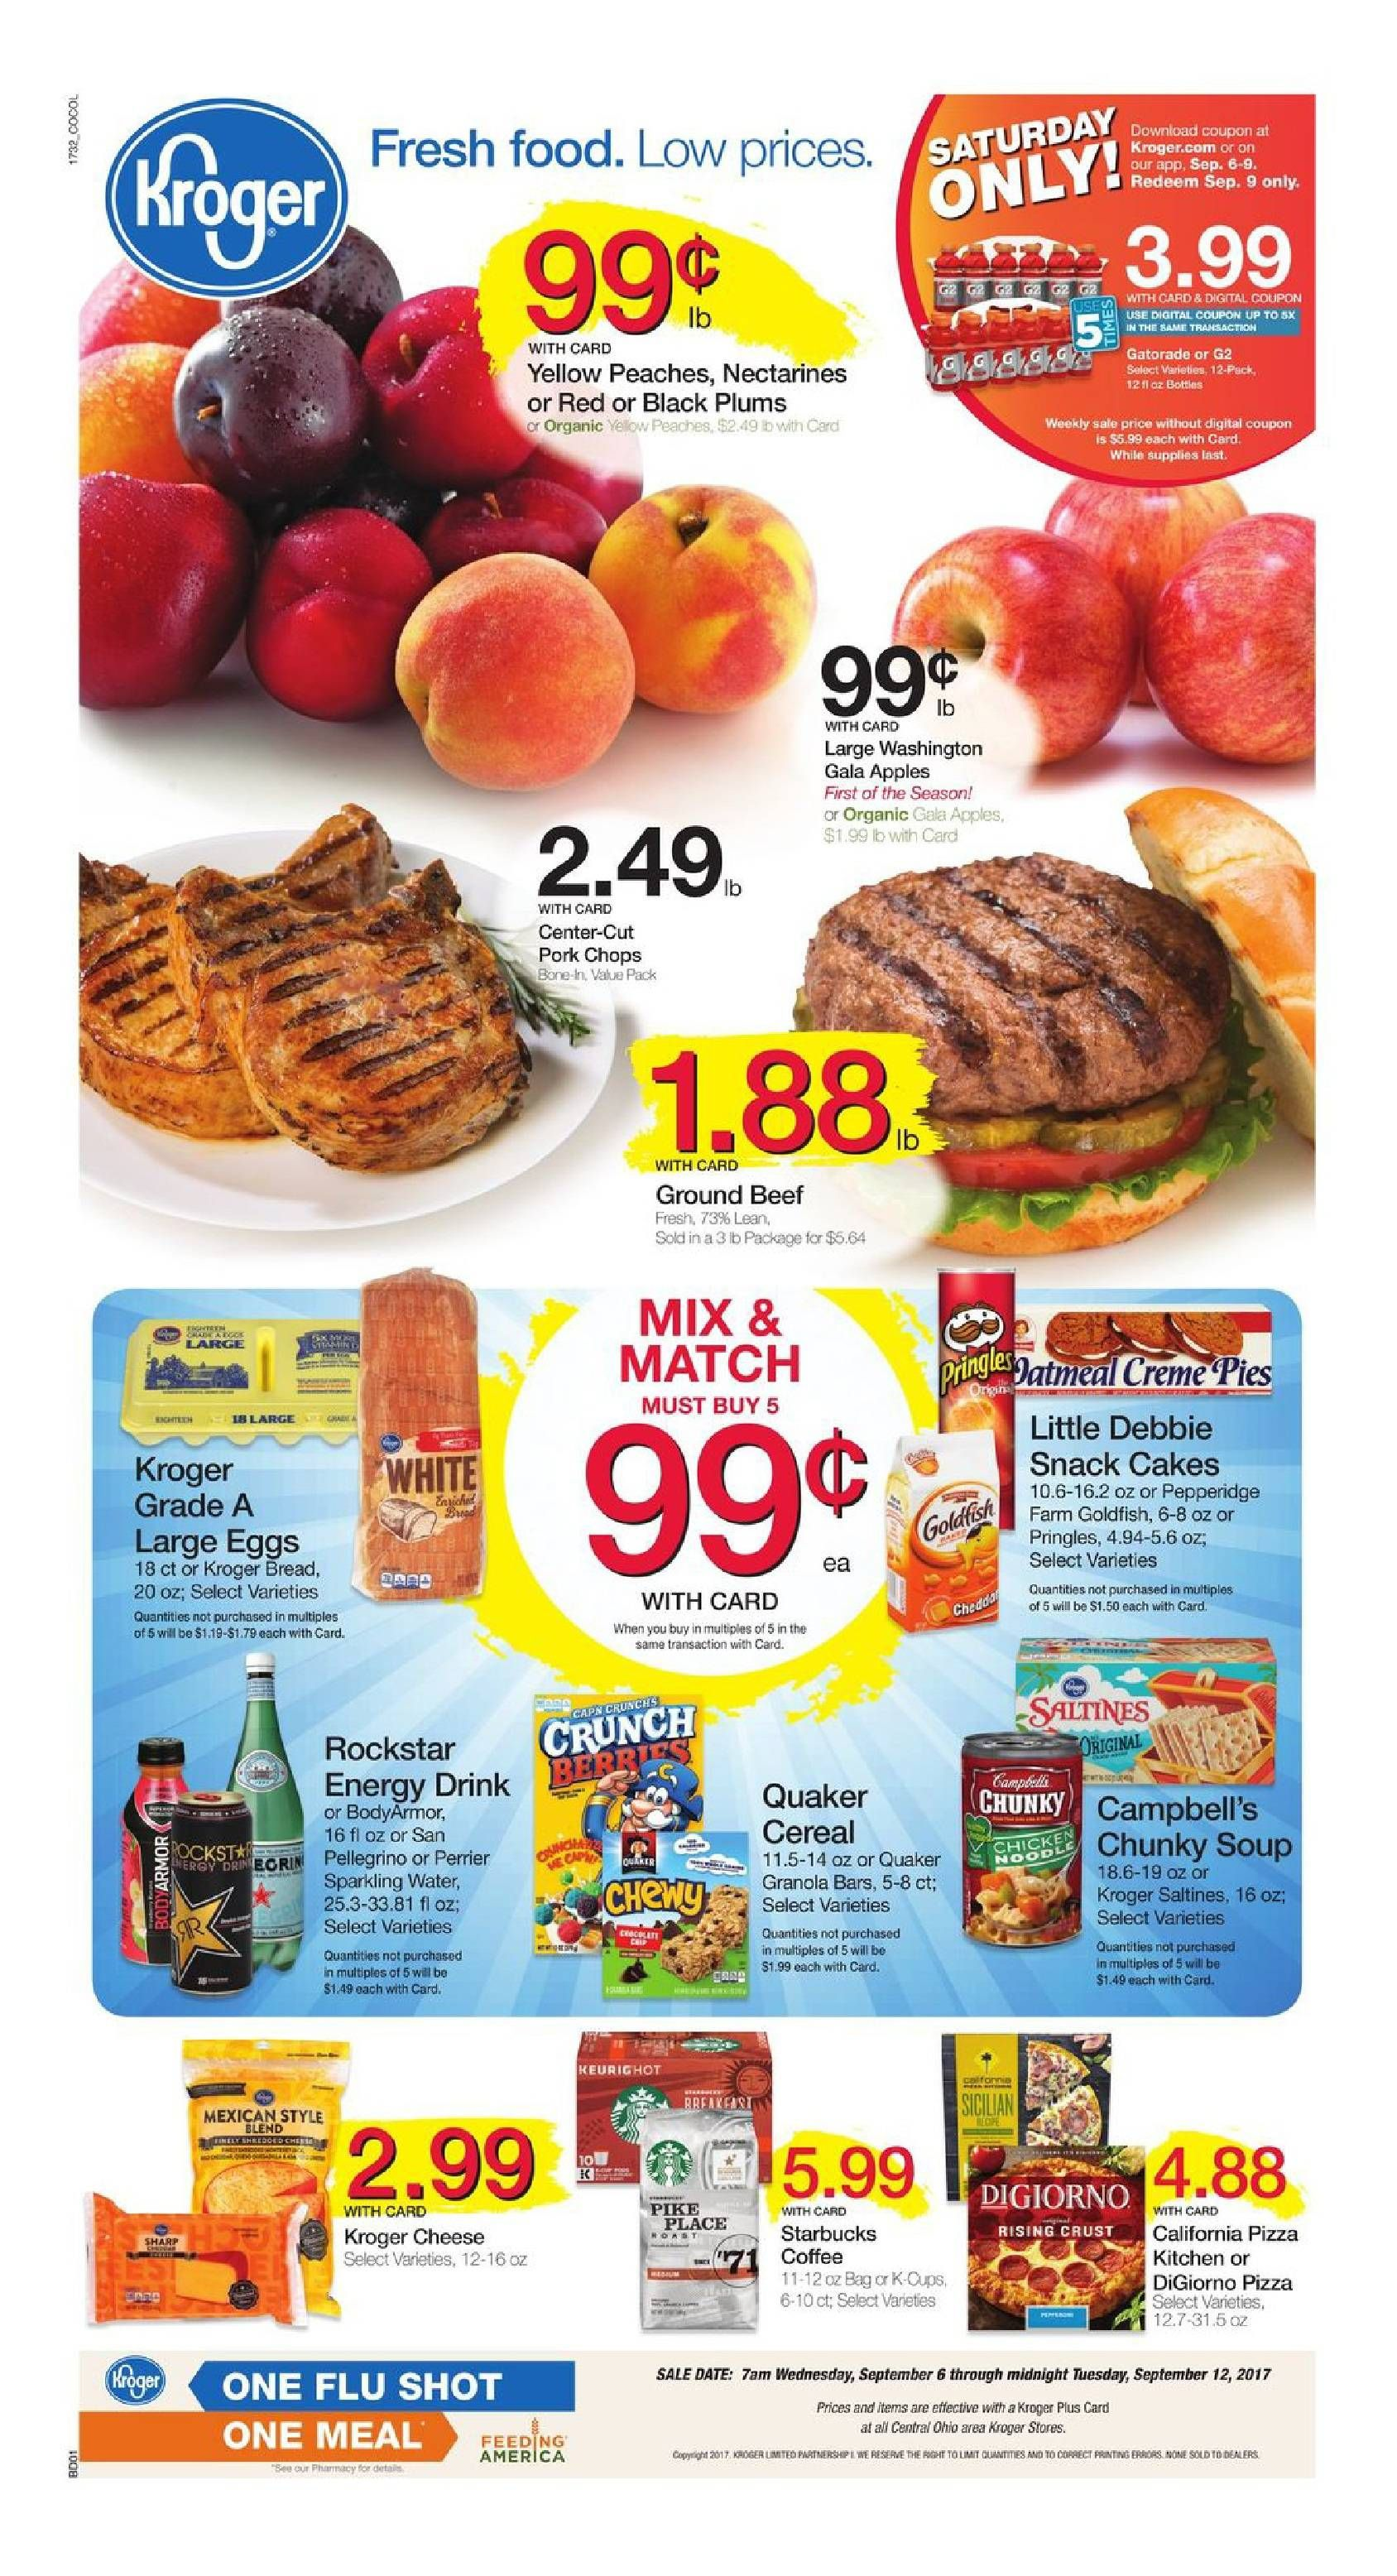 Fr Frys Food Store Digital Coupons - Search latest kroger weekly ad here and find digital coupons free friday download recipe